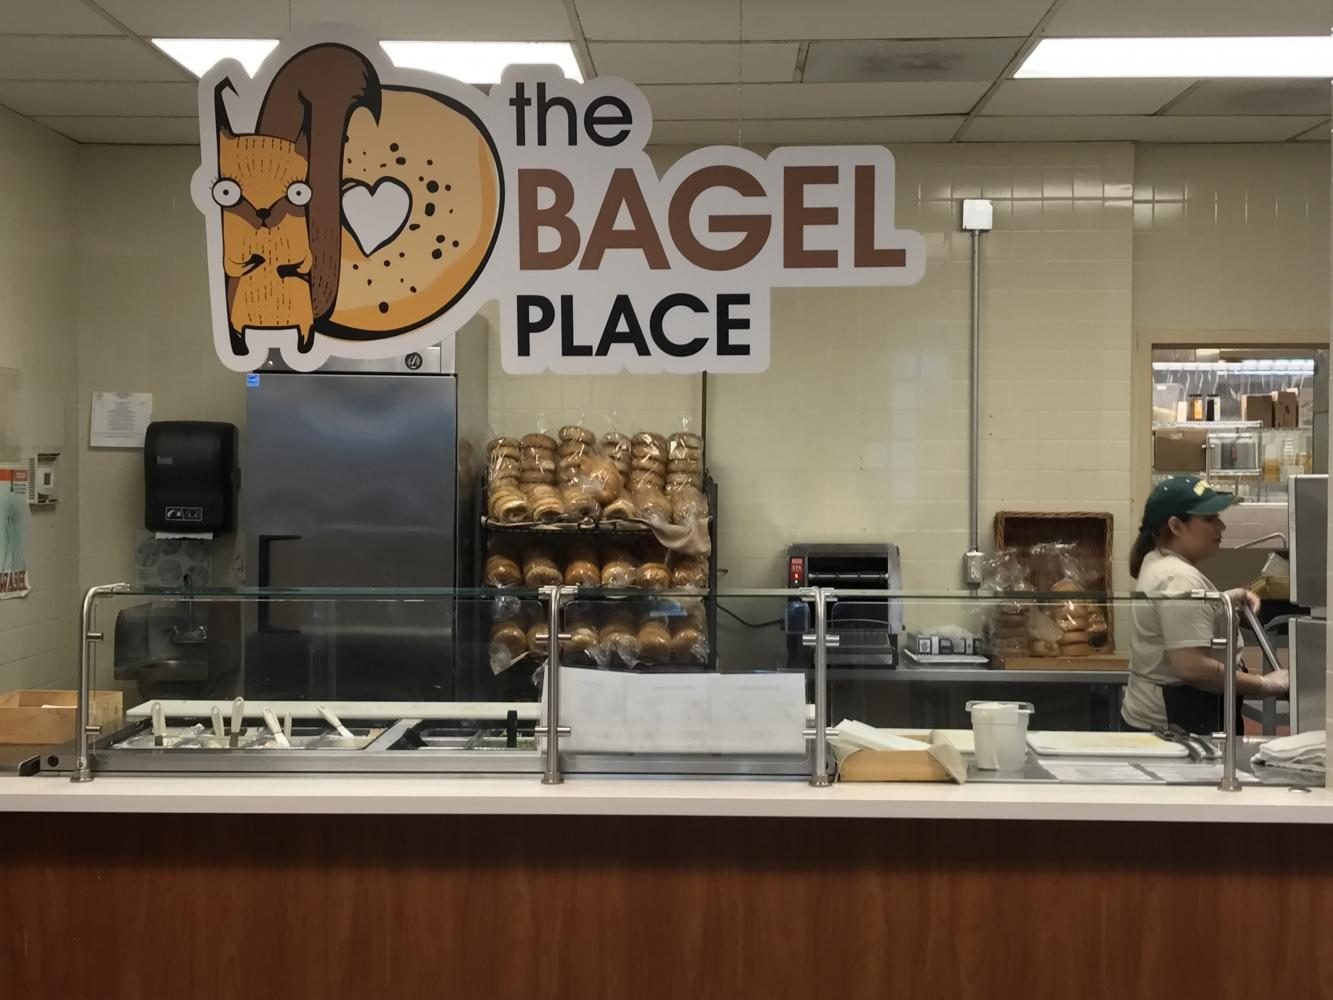 Yaneli Manzo performs her work duties at The Bagel Place in the River Front Center on Sept. 5. The Bagel Place replaced RF Greens, which specialized in customizable salads, with custom bagels featuring special toppings and schmears.